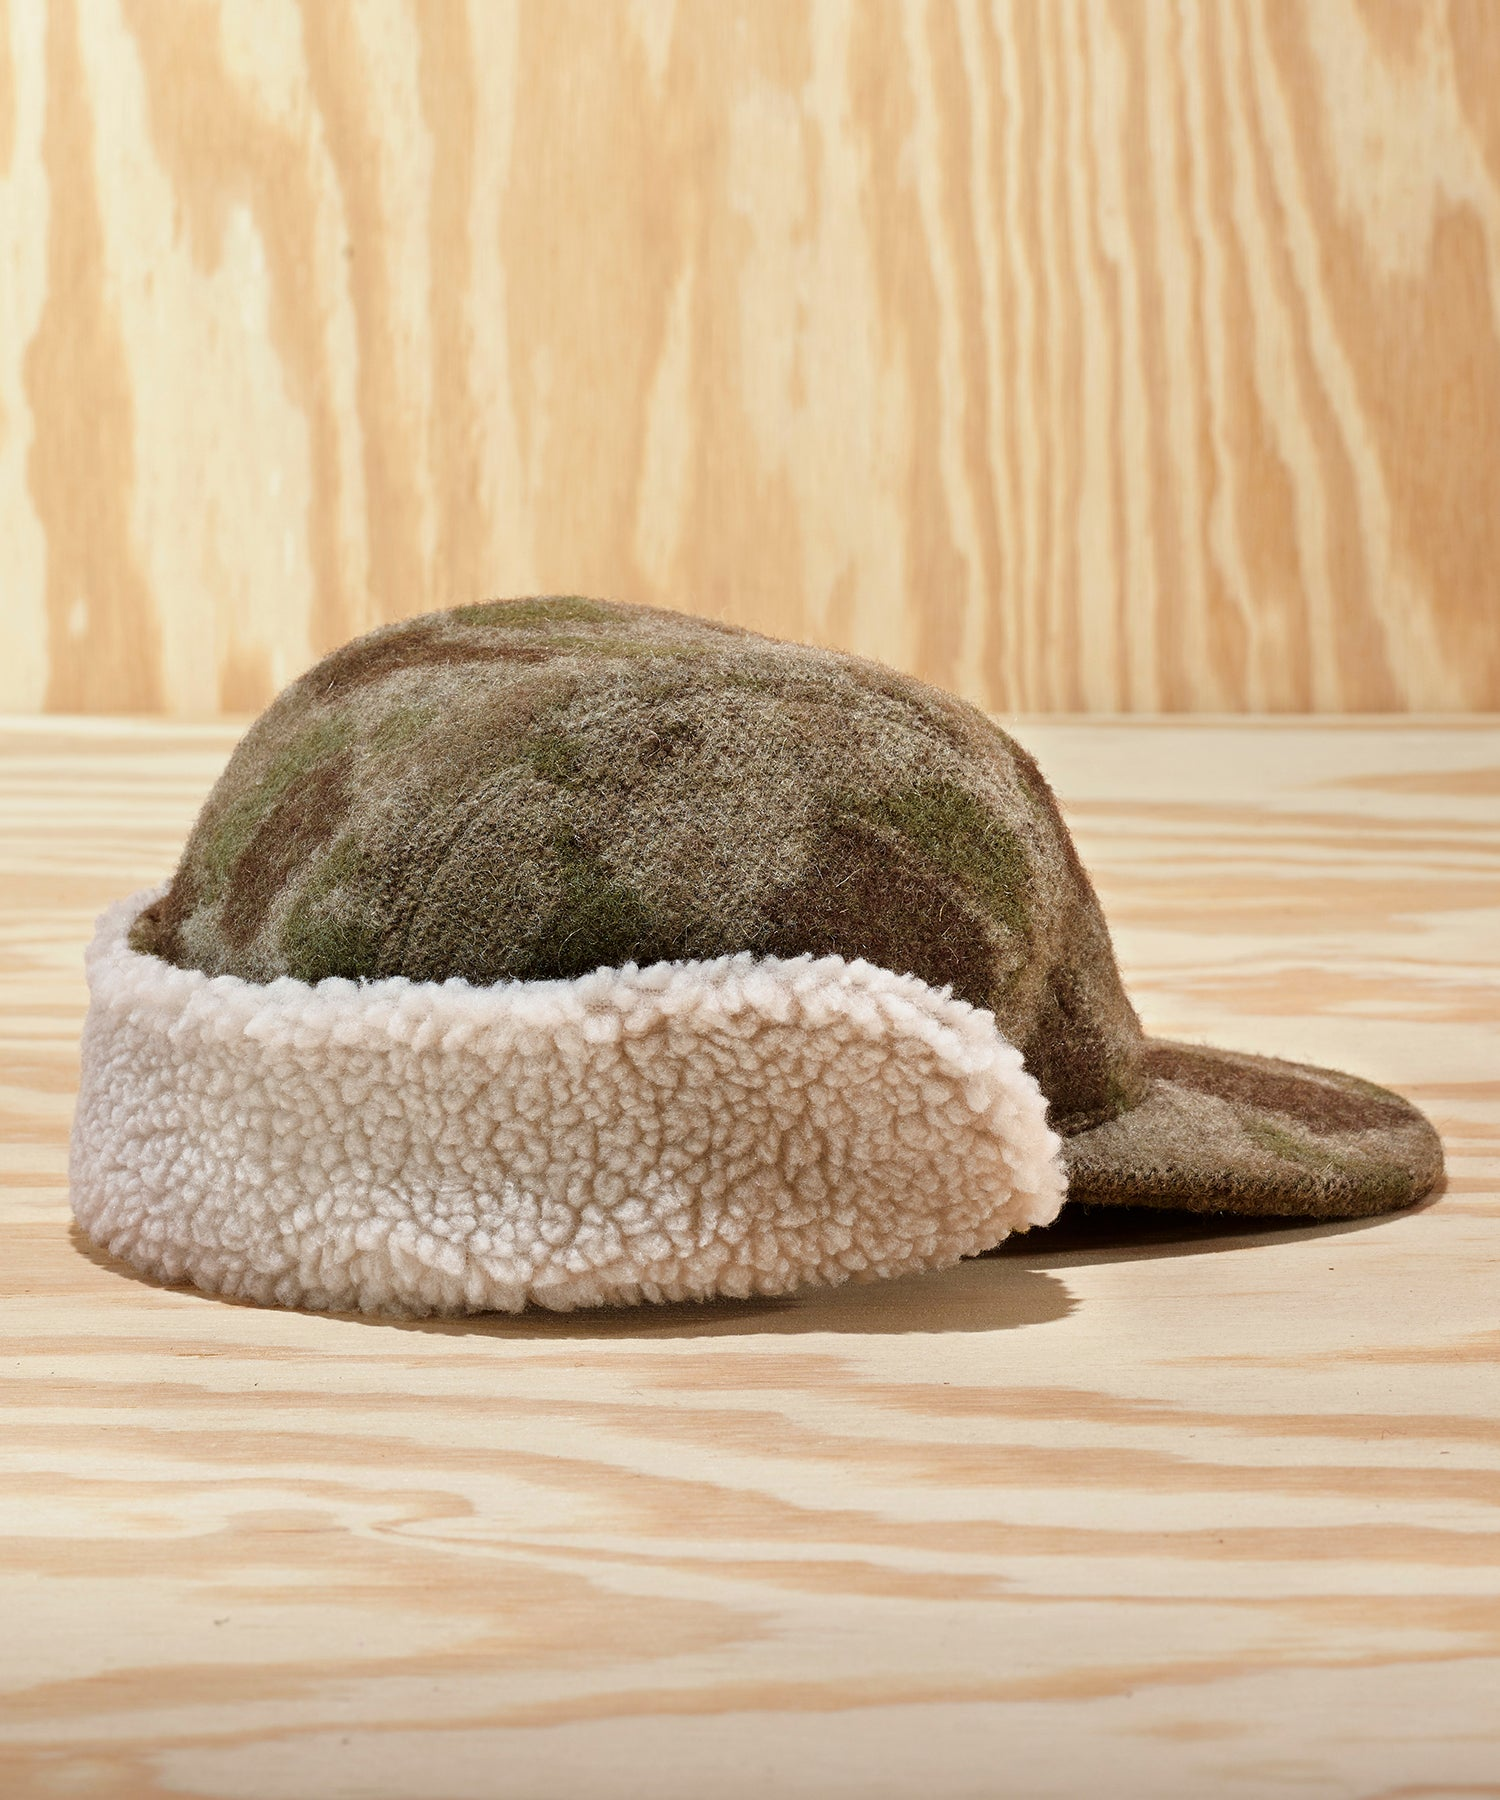 L.L.Bean x Todd Snyder Sherpa-Lined Hunting Cap in Camo